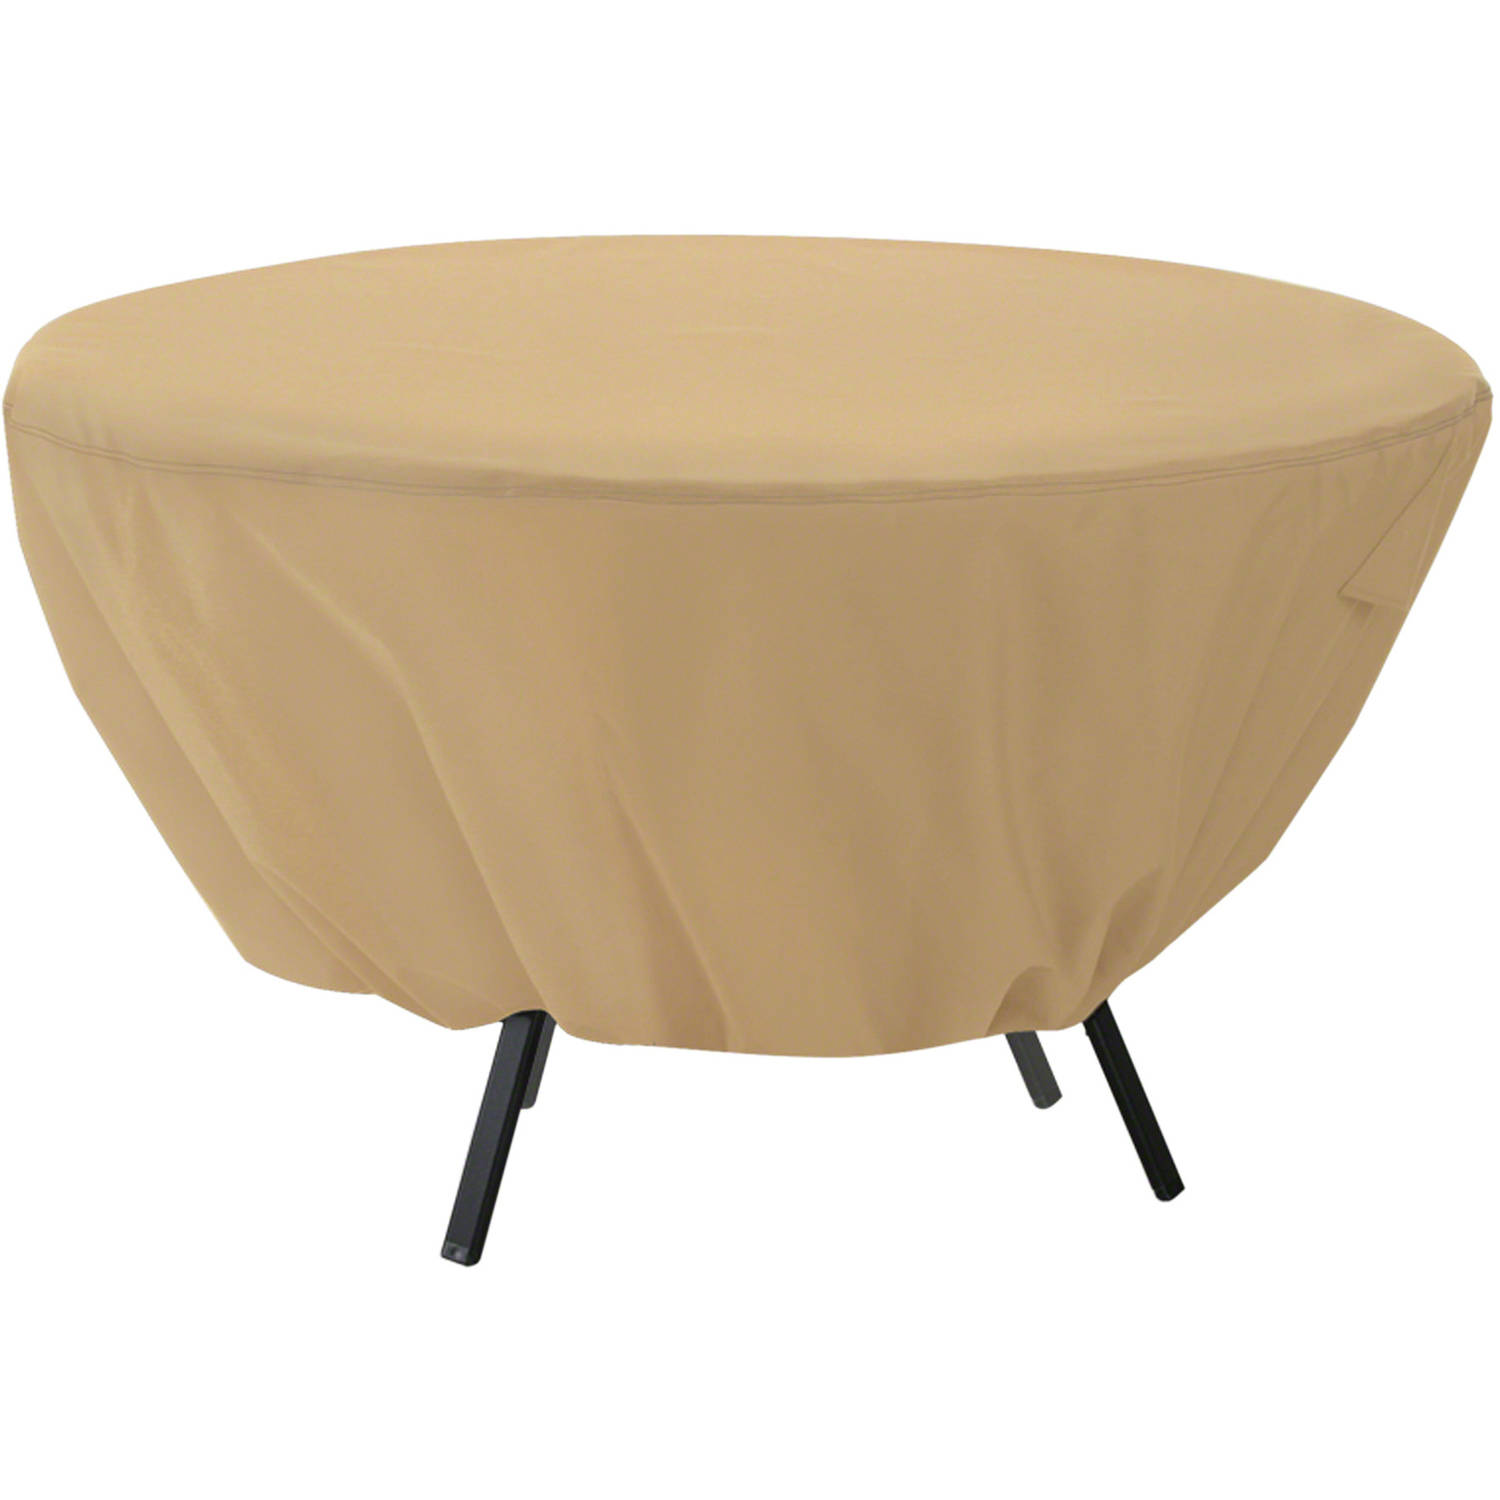 Classic Accessories Terrazzo Round Patio Table Cover All Weather Protection Outdoor... by Classic Accessories